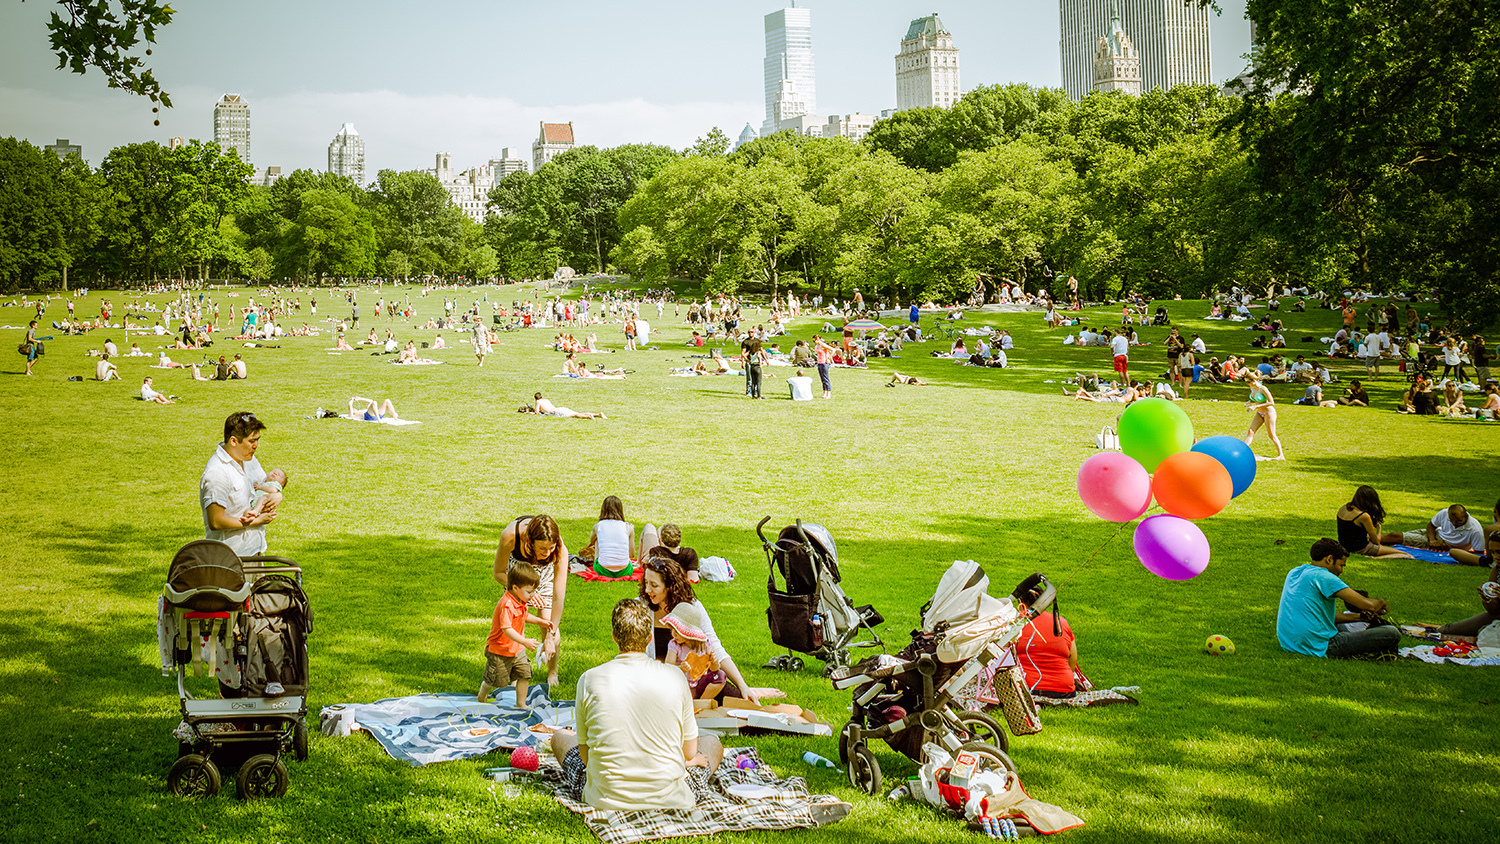 Check out our beautiful photos of NYC in the summer